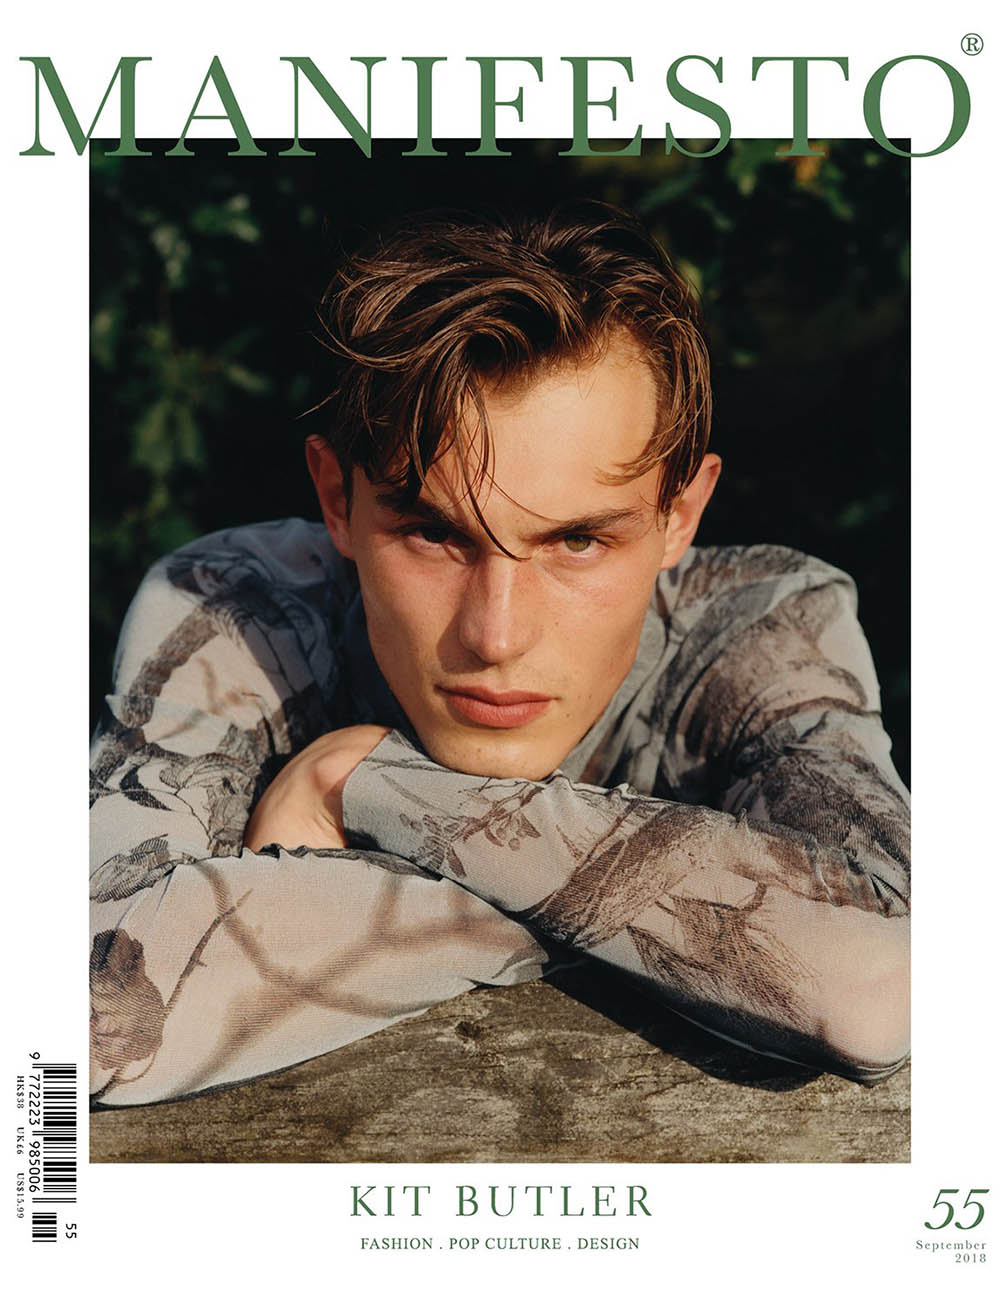 Kit Butler covers Manifesto Magazine September 2018 by Ben Parks